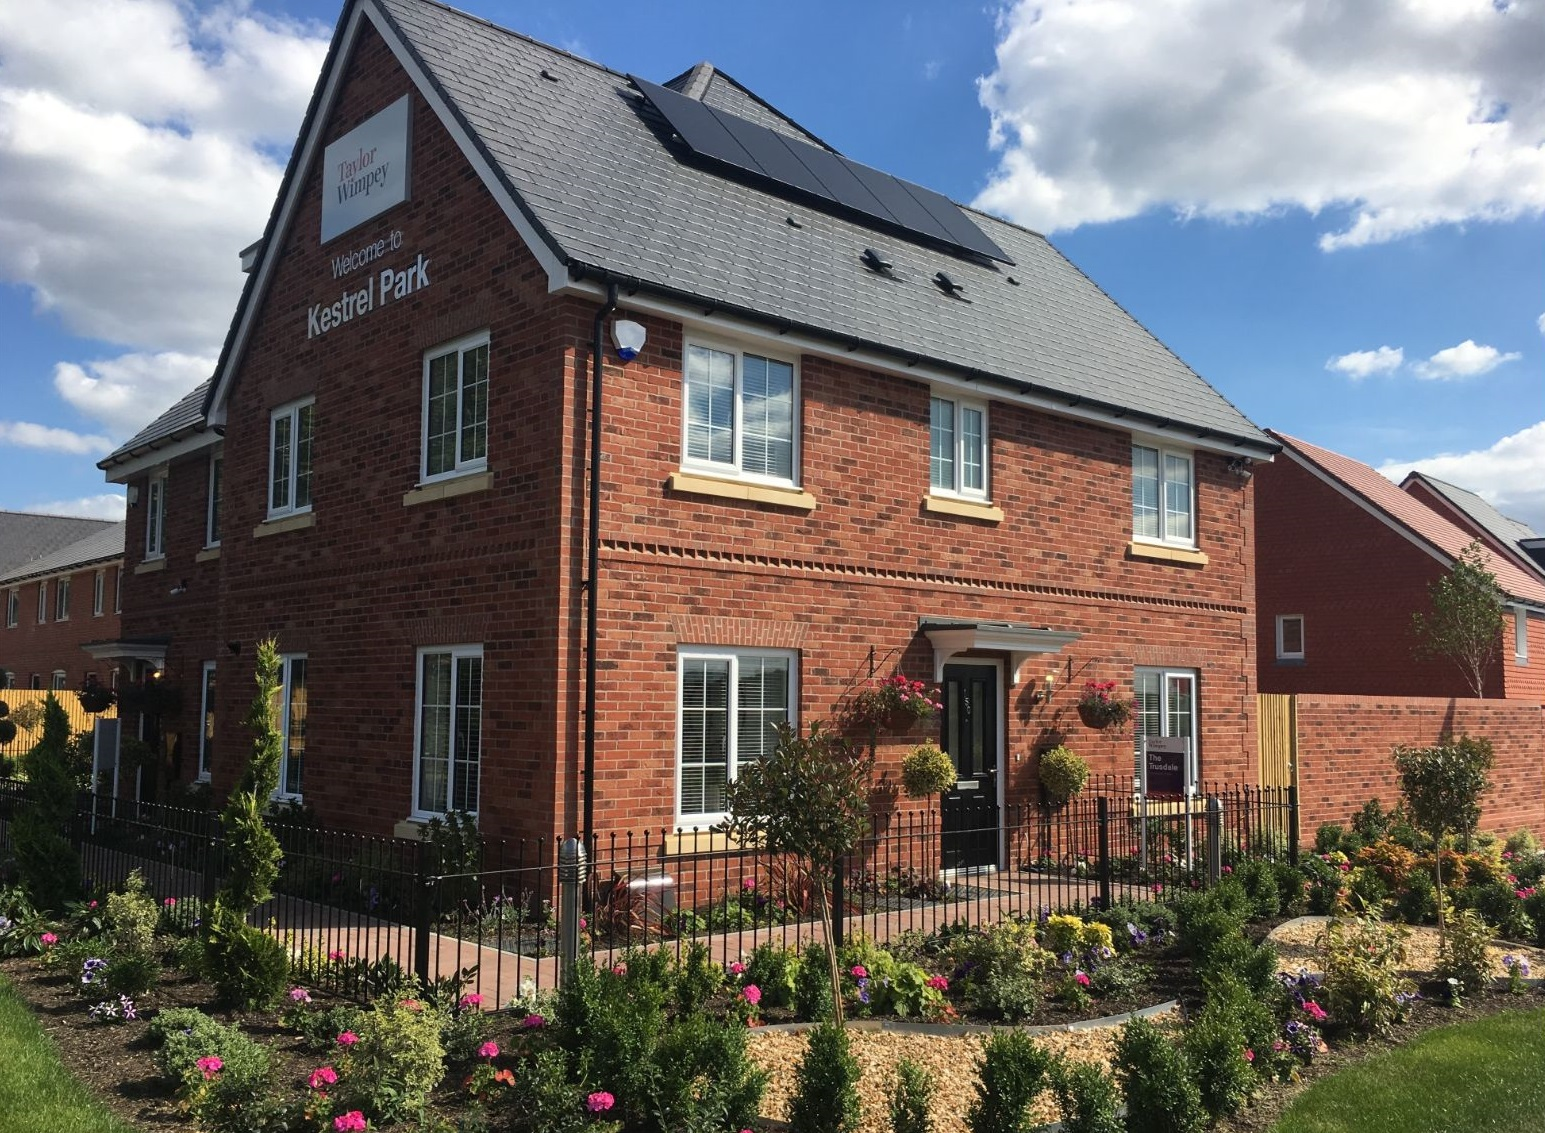 Exterior of Trusdale show home